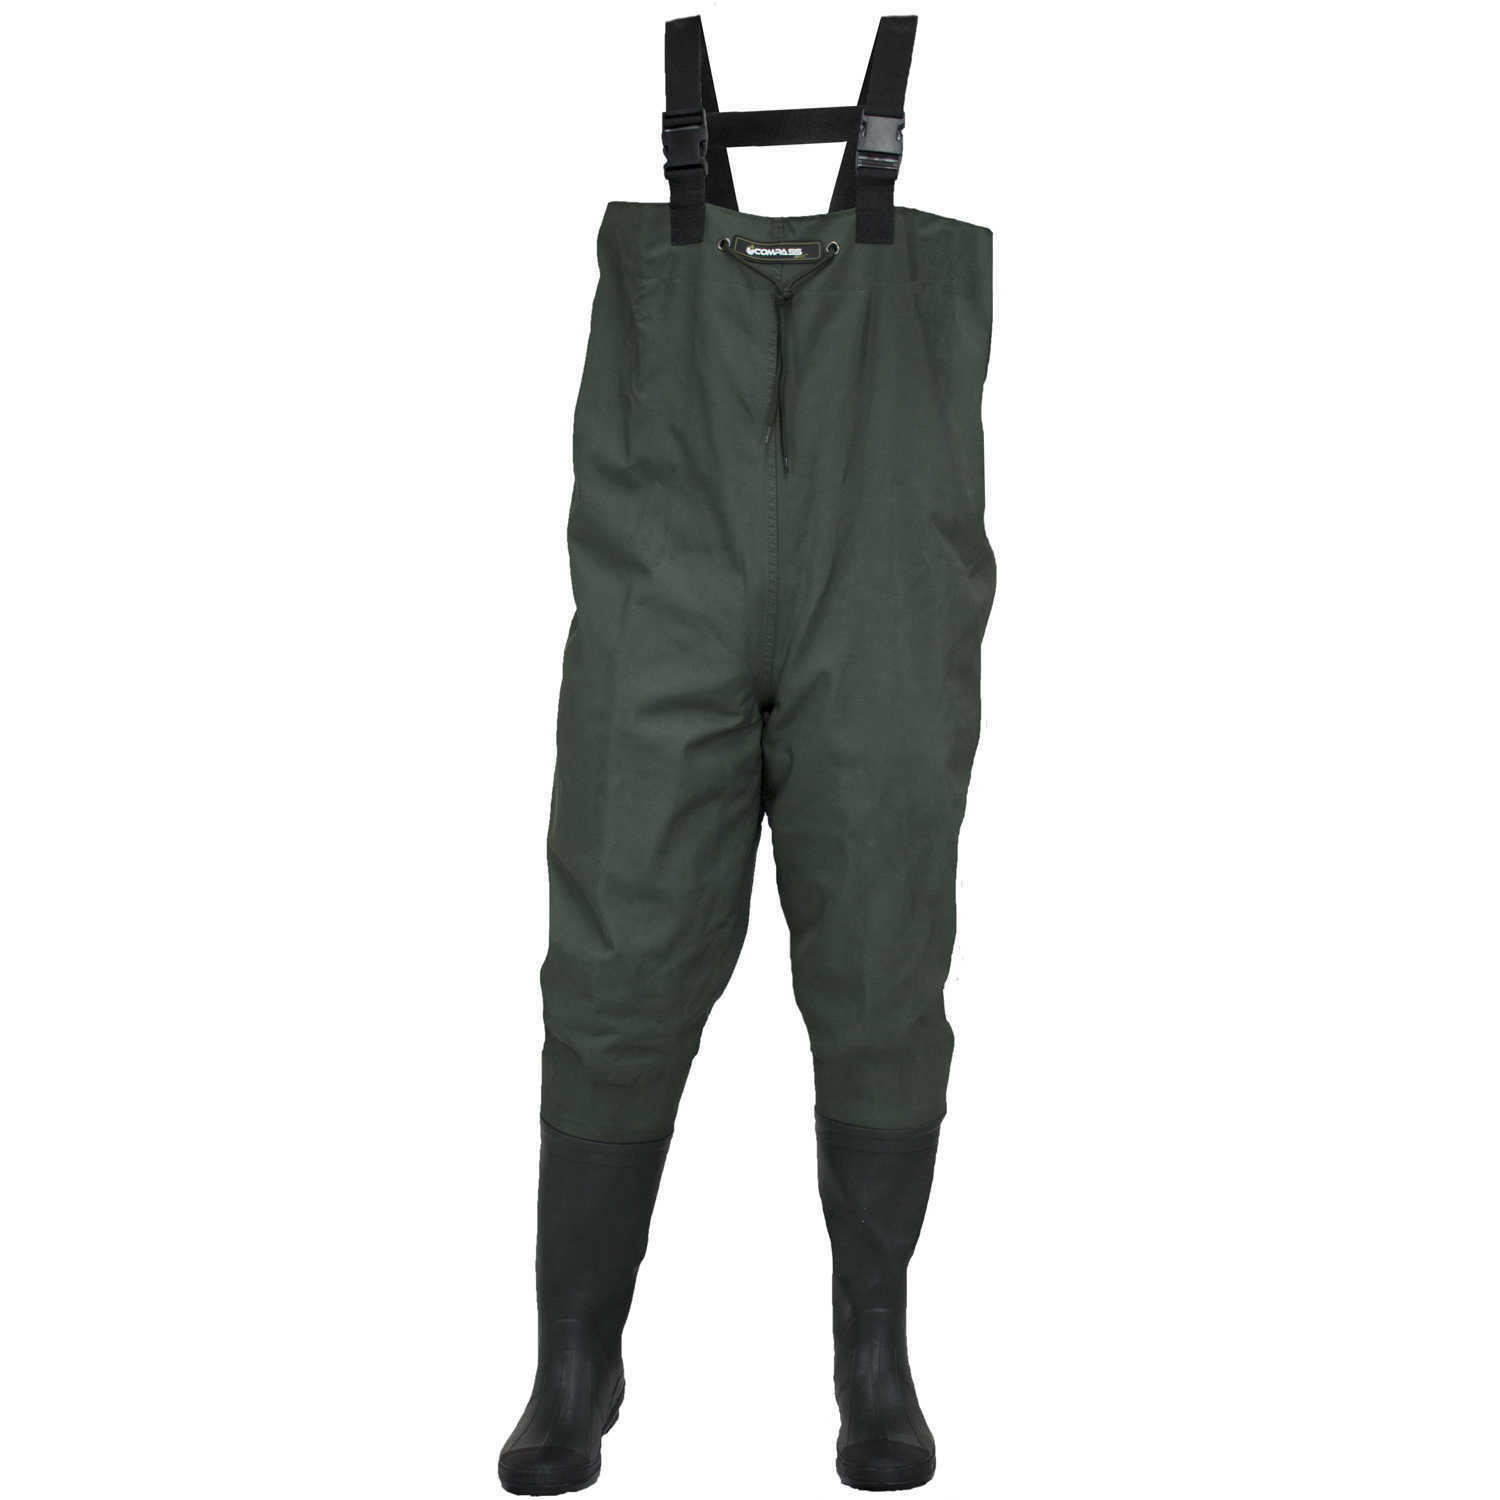 Compass 360 Oxbow Oxbow 360 Poly-Rubber Cleated Sole Chest Waders Größe 9 ea58ad